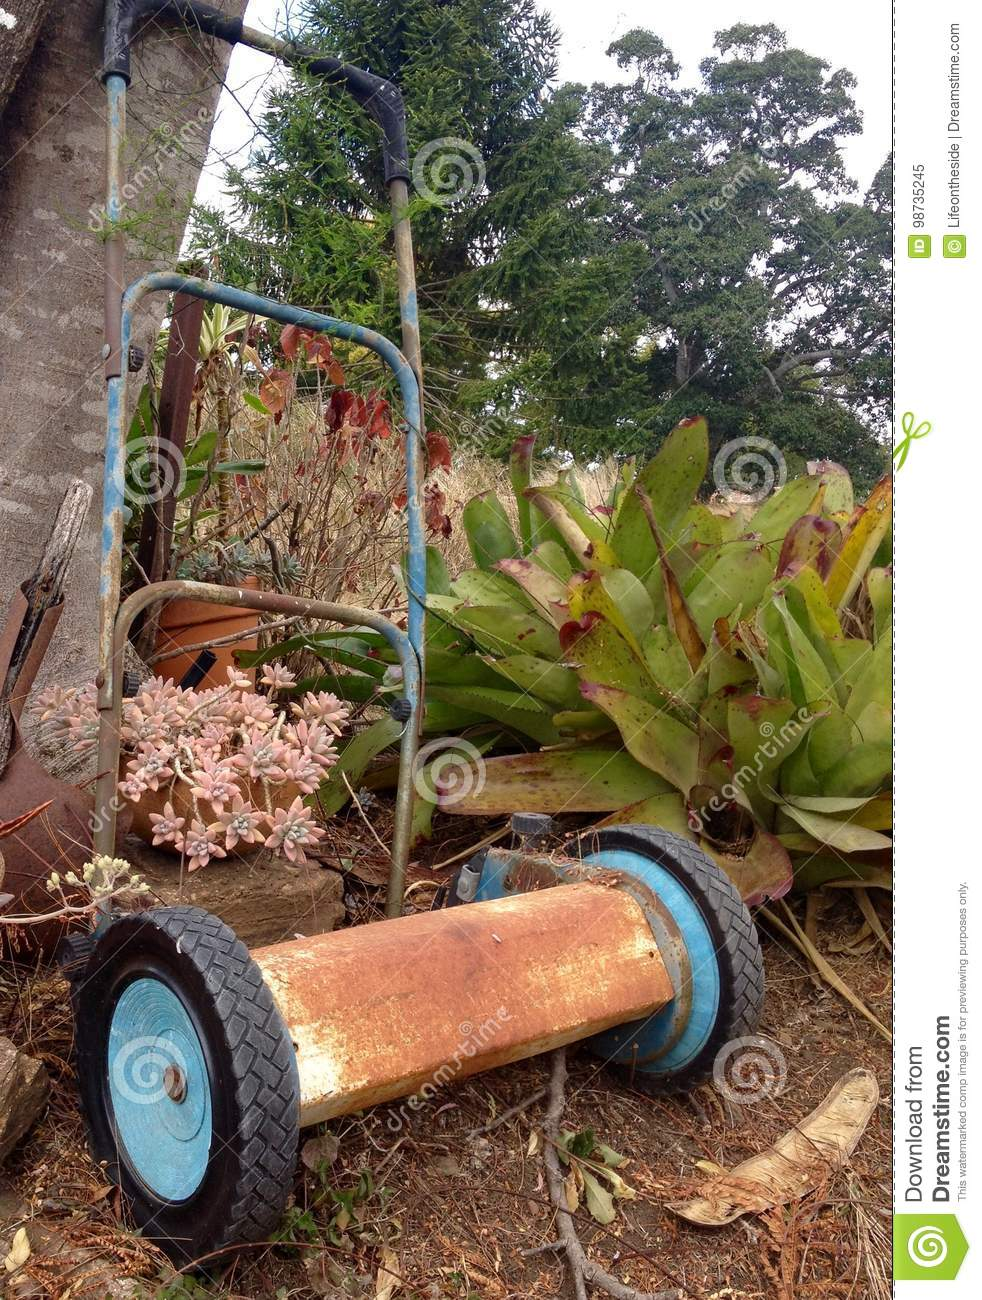 Antique Vintage Garden Landscaping Tools Now Ornament Stock Image ...